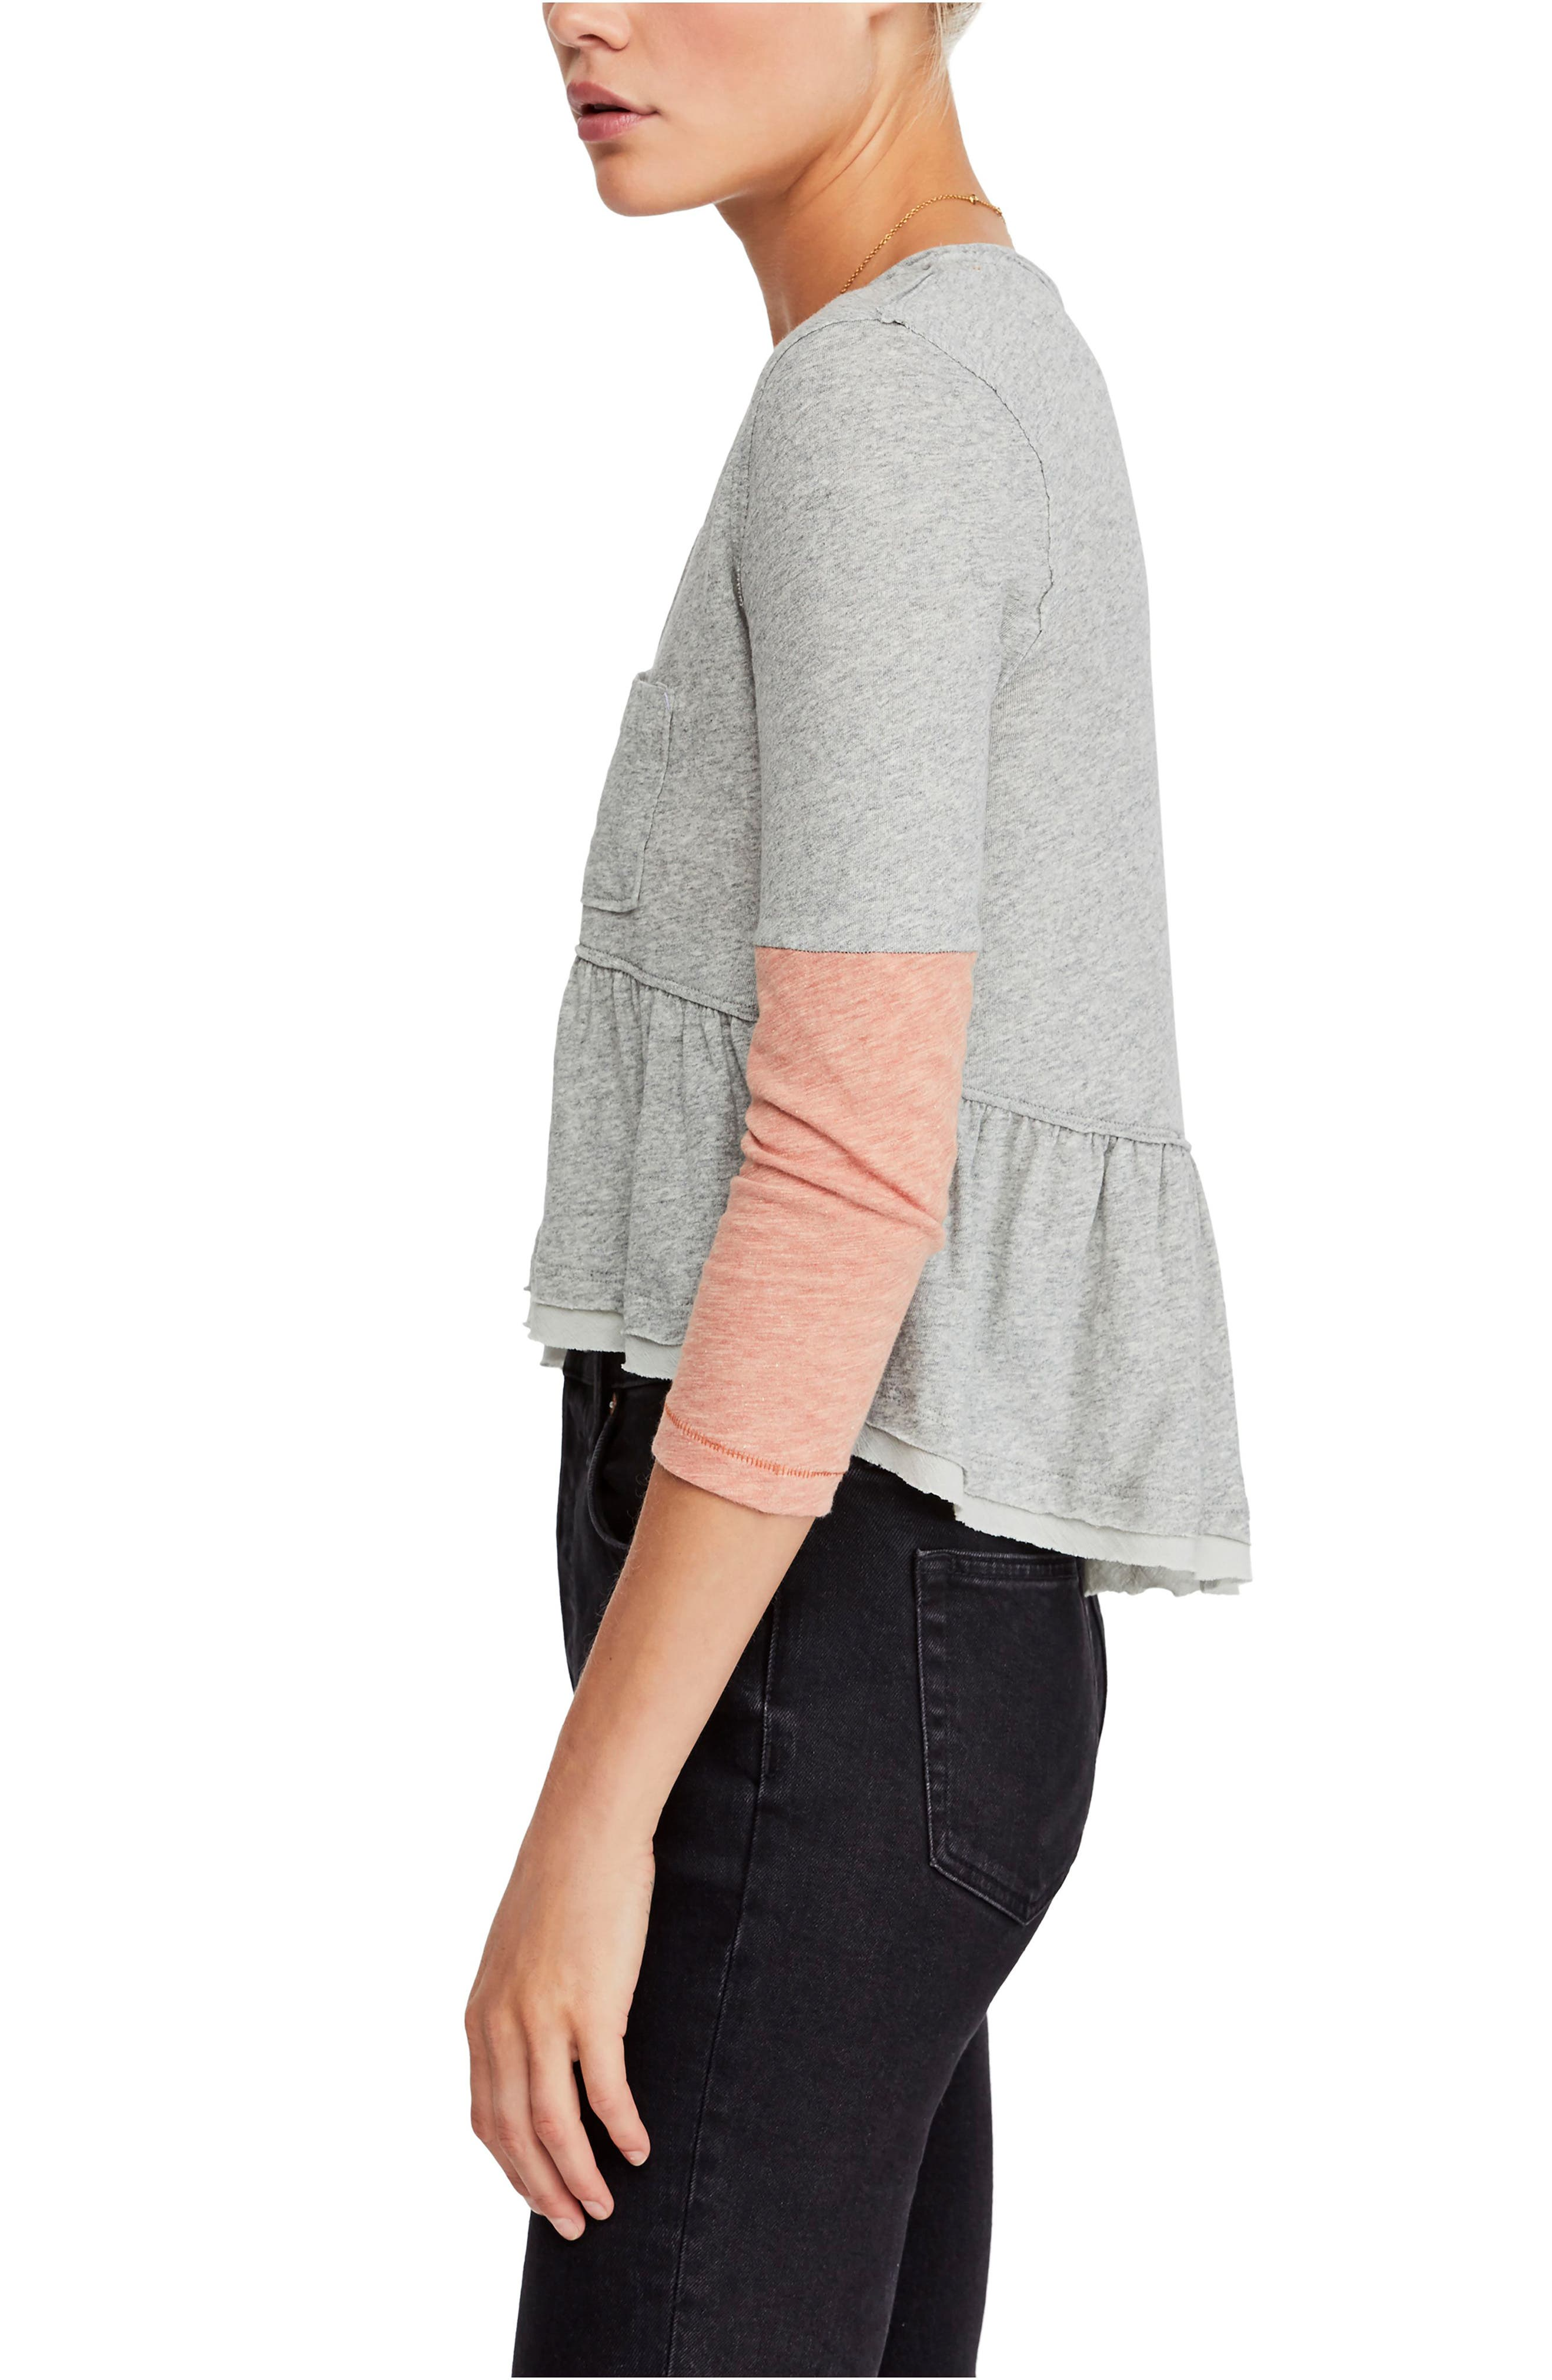 FREE PEOPLE, Heart of Mine Colorblock Cotton Top, Alternate thumbnail 3, color, 030